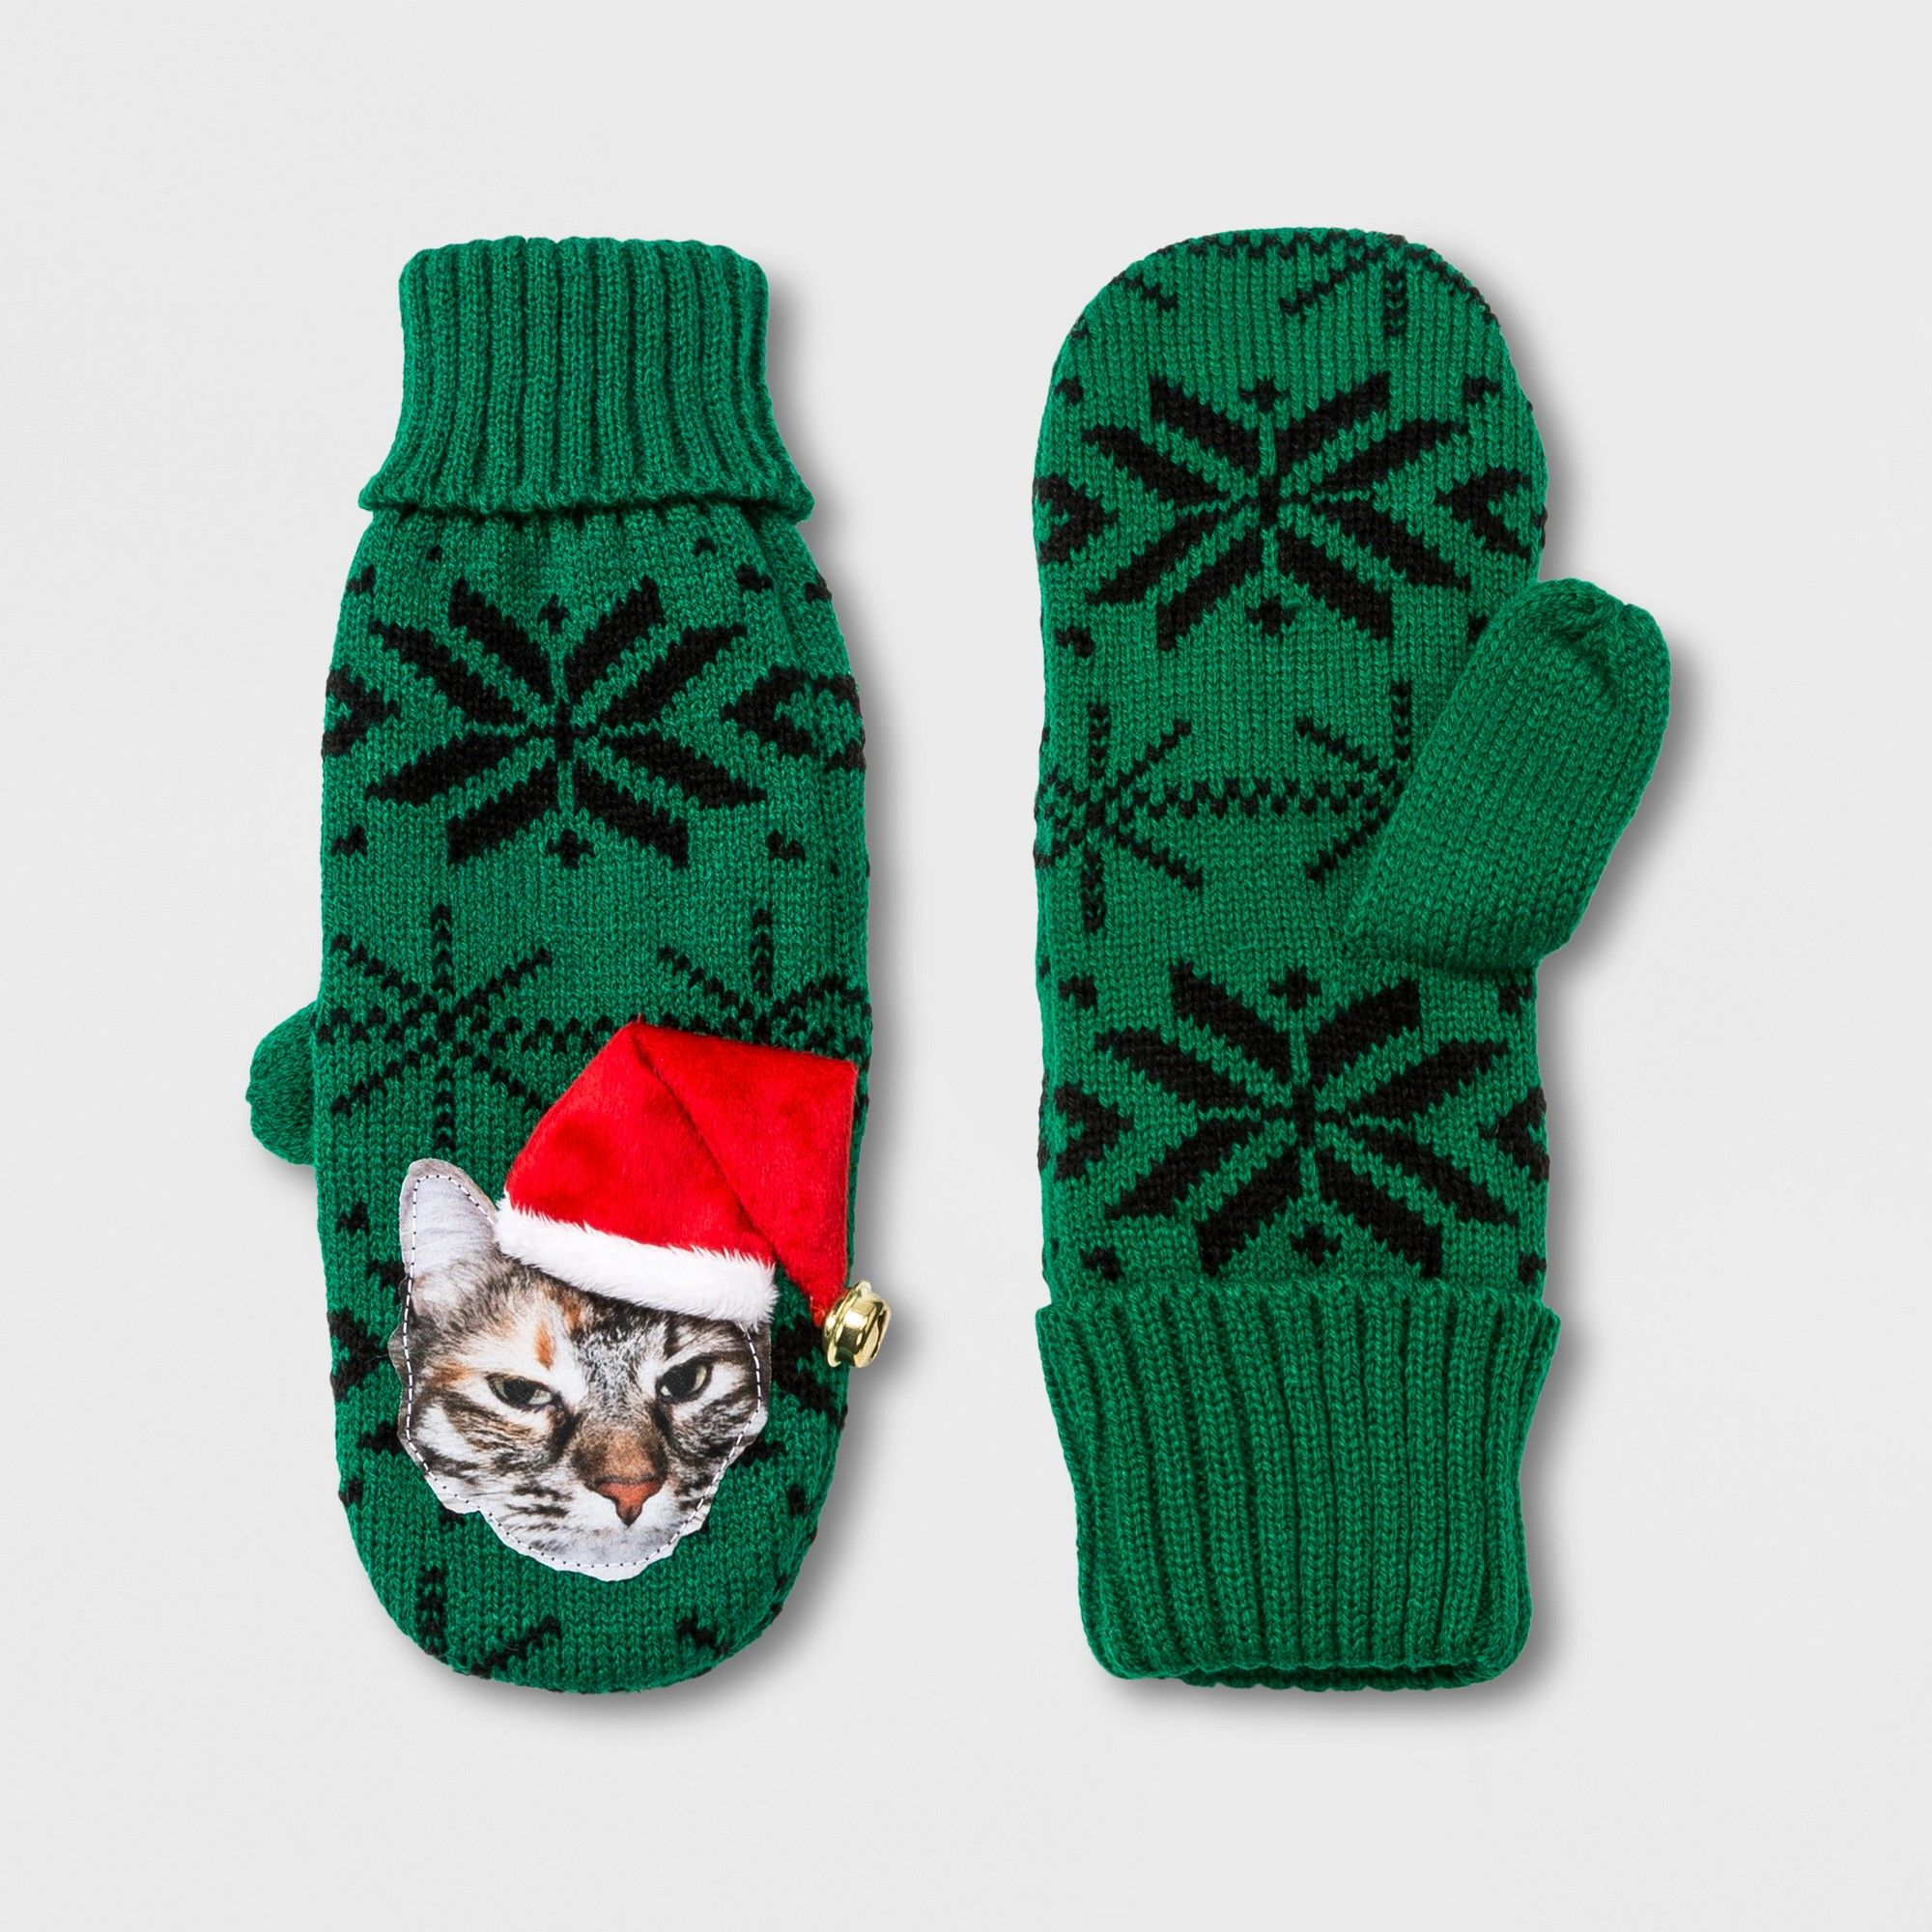 e4256a747 Women's Cat Mitten - Green, Size: One Size | Products | Mittens ...